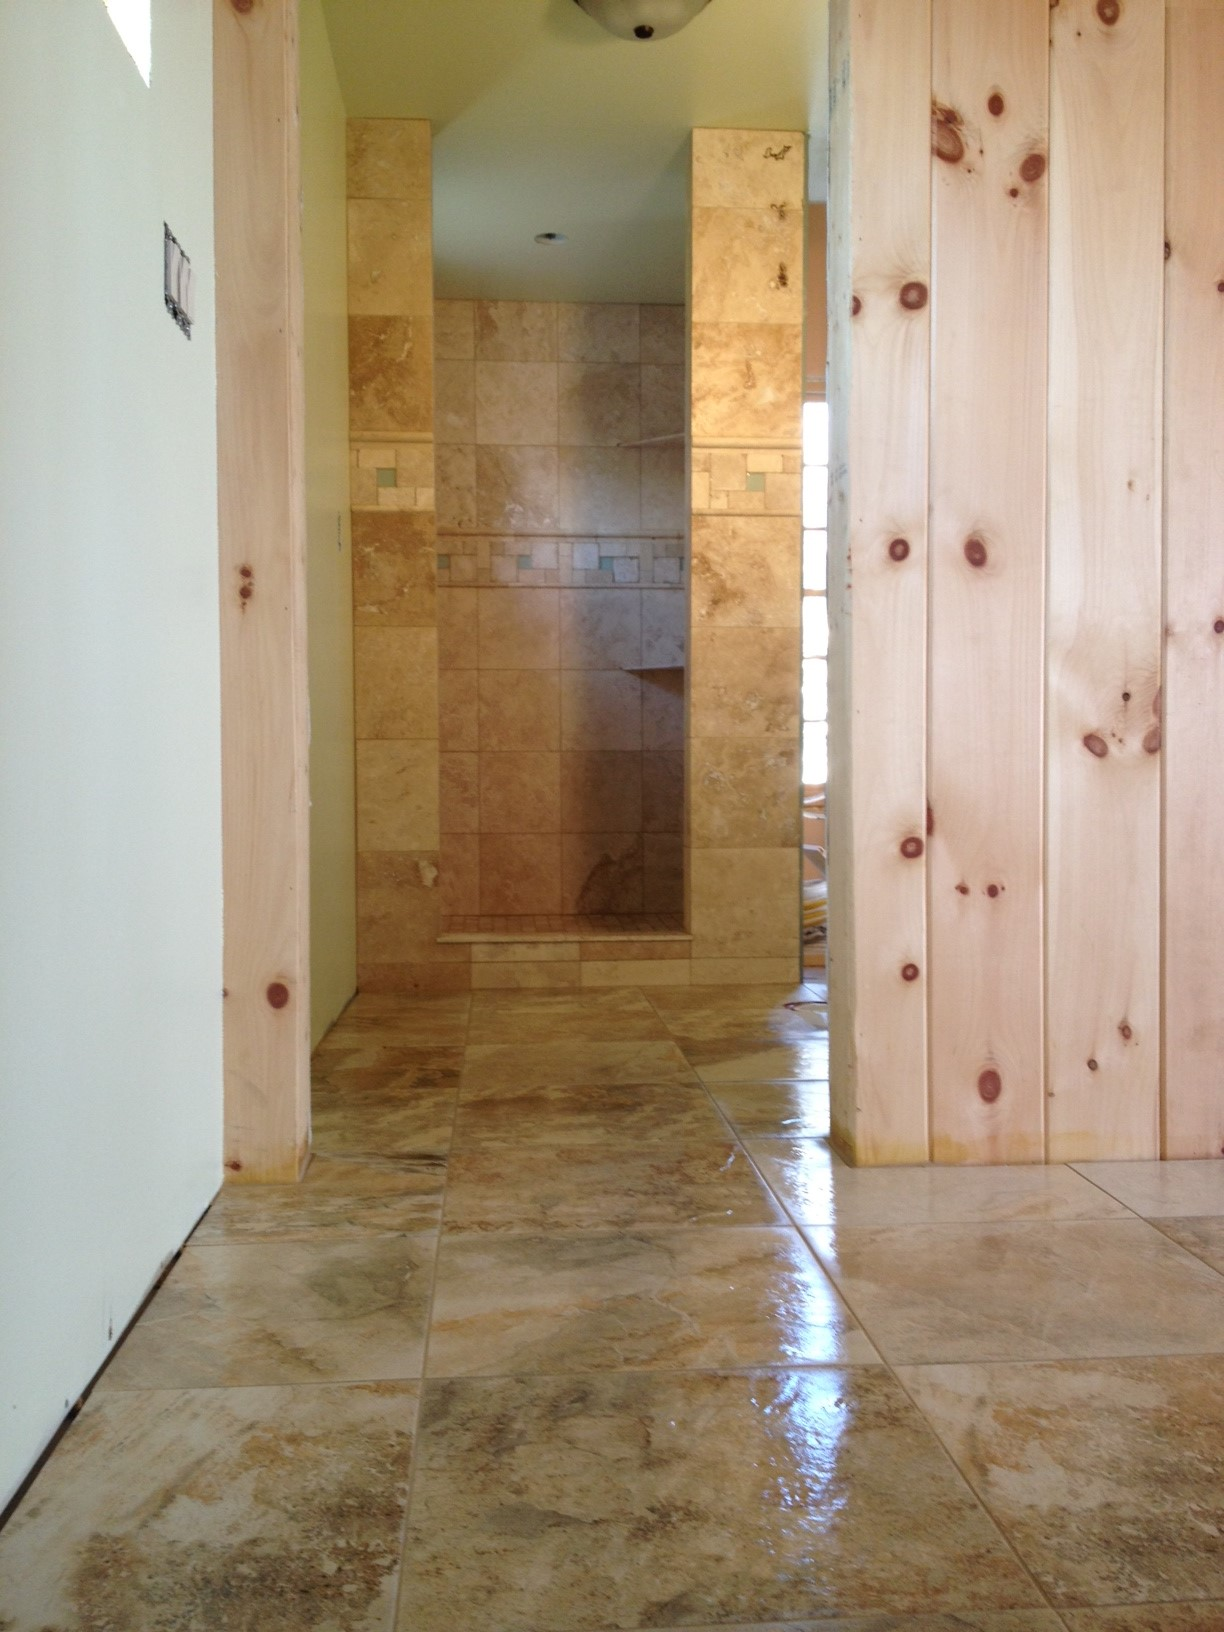 Nappa's Catskill Tile & Wood Floors